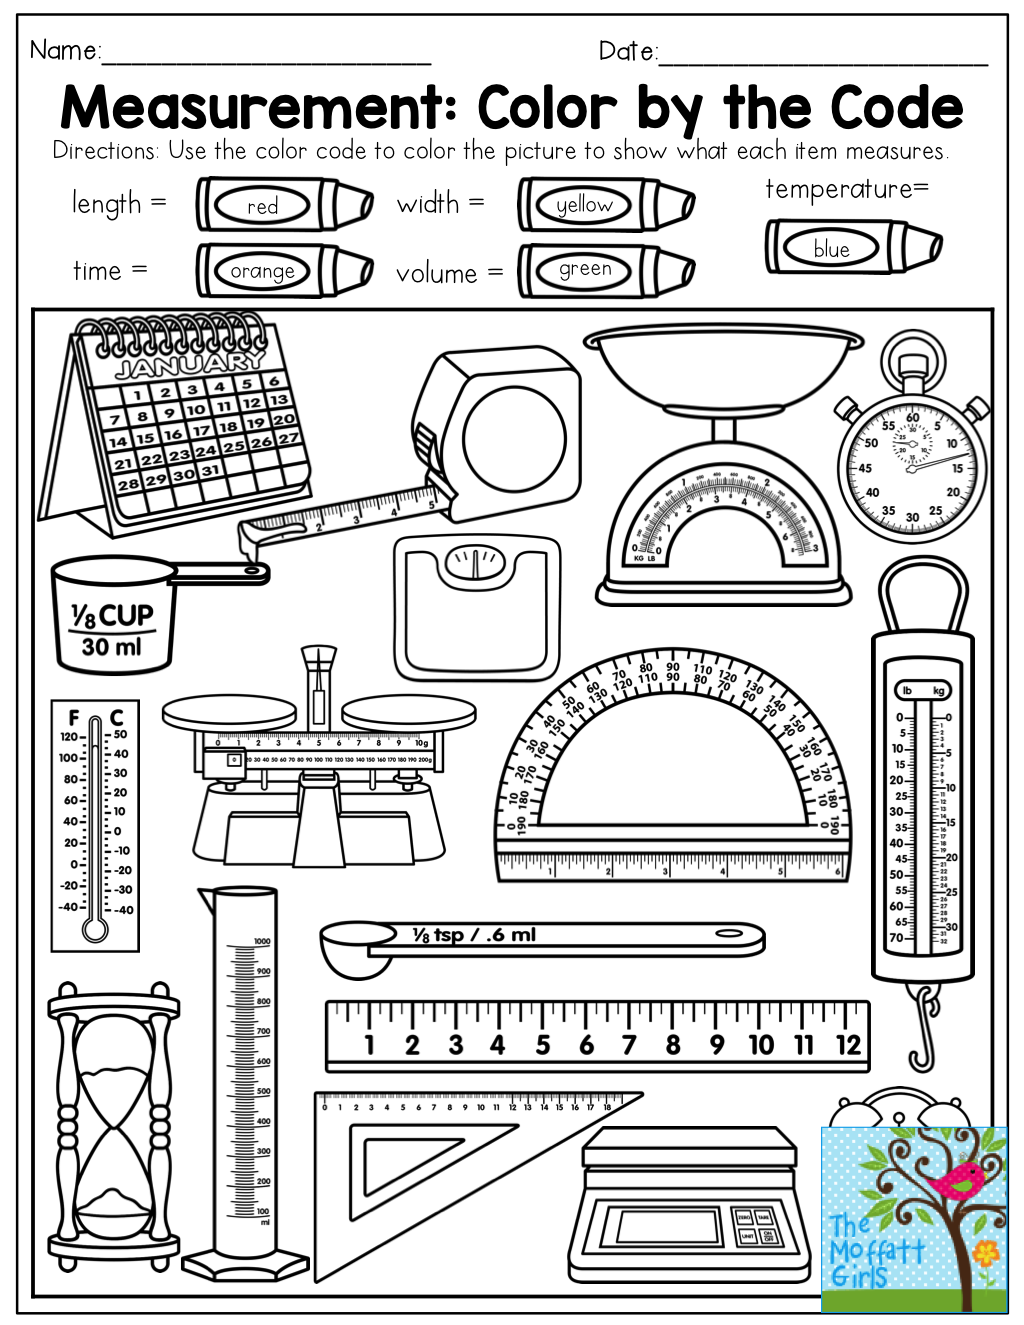 worksheet Measurement Worksheets For Kindergarten measurement color by the code length time width volume temperature kindergarten